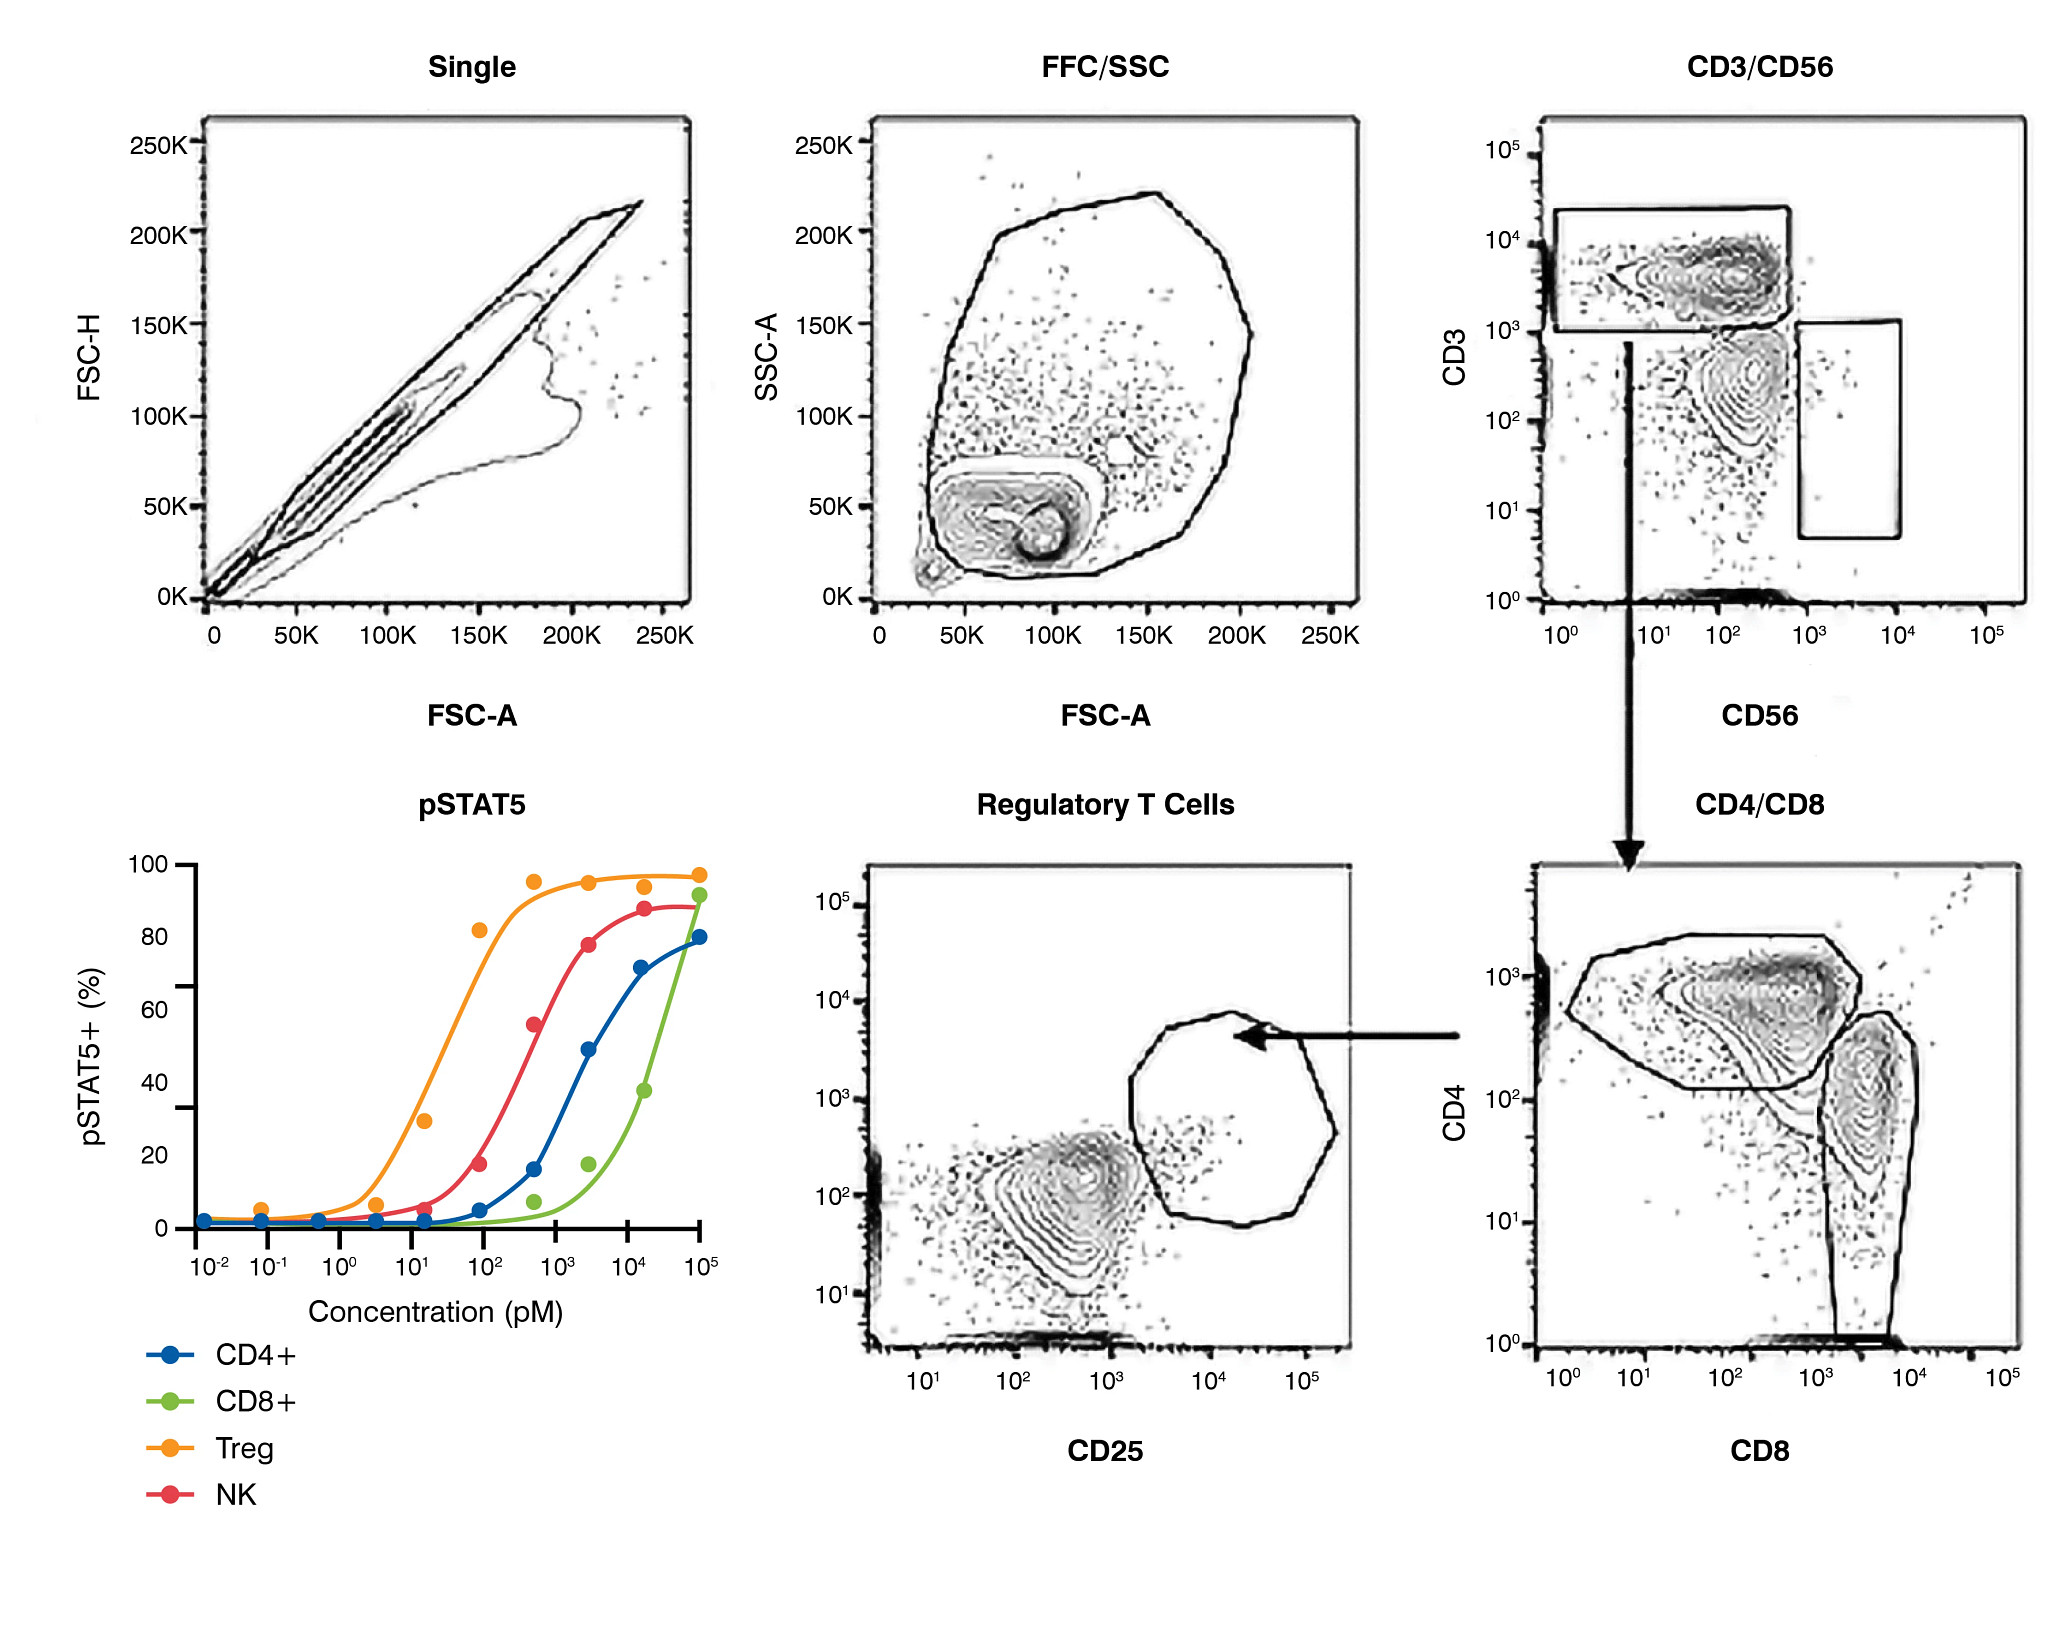 Flow cytometry graphs showing cellular responses in a heterogeneous population in IL-2 stimulation assays